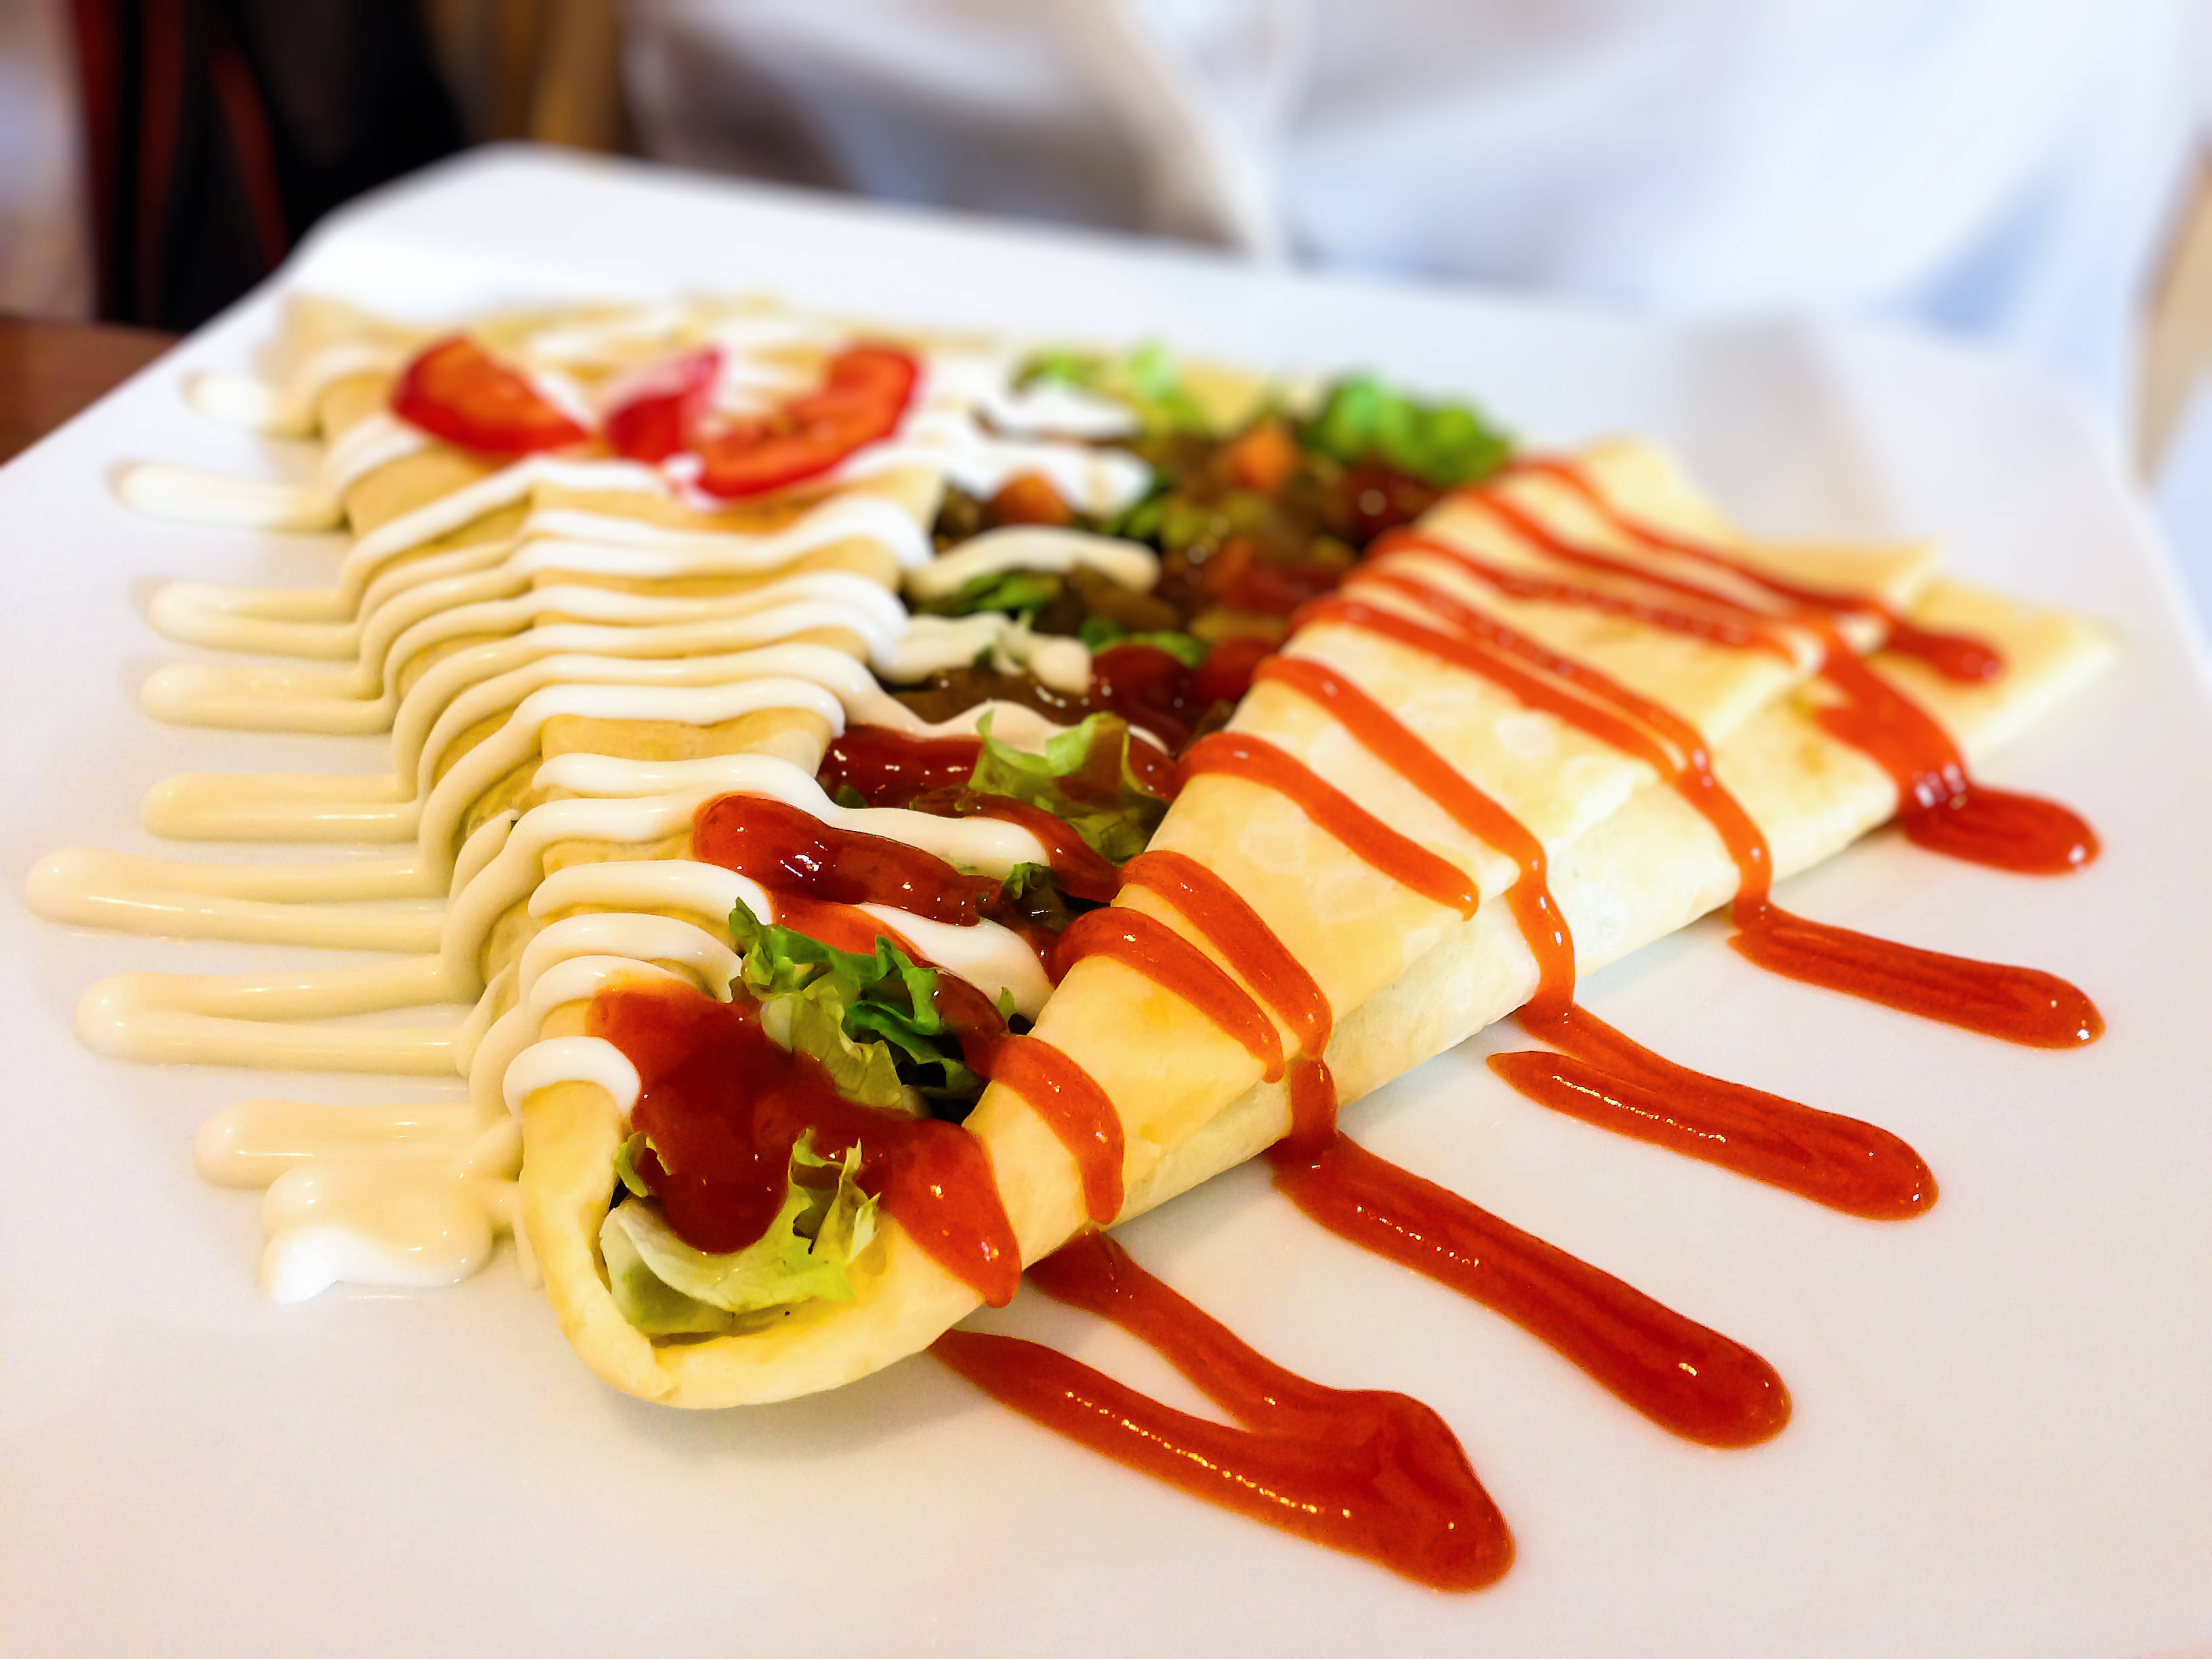 Japanese curry crepe